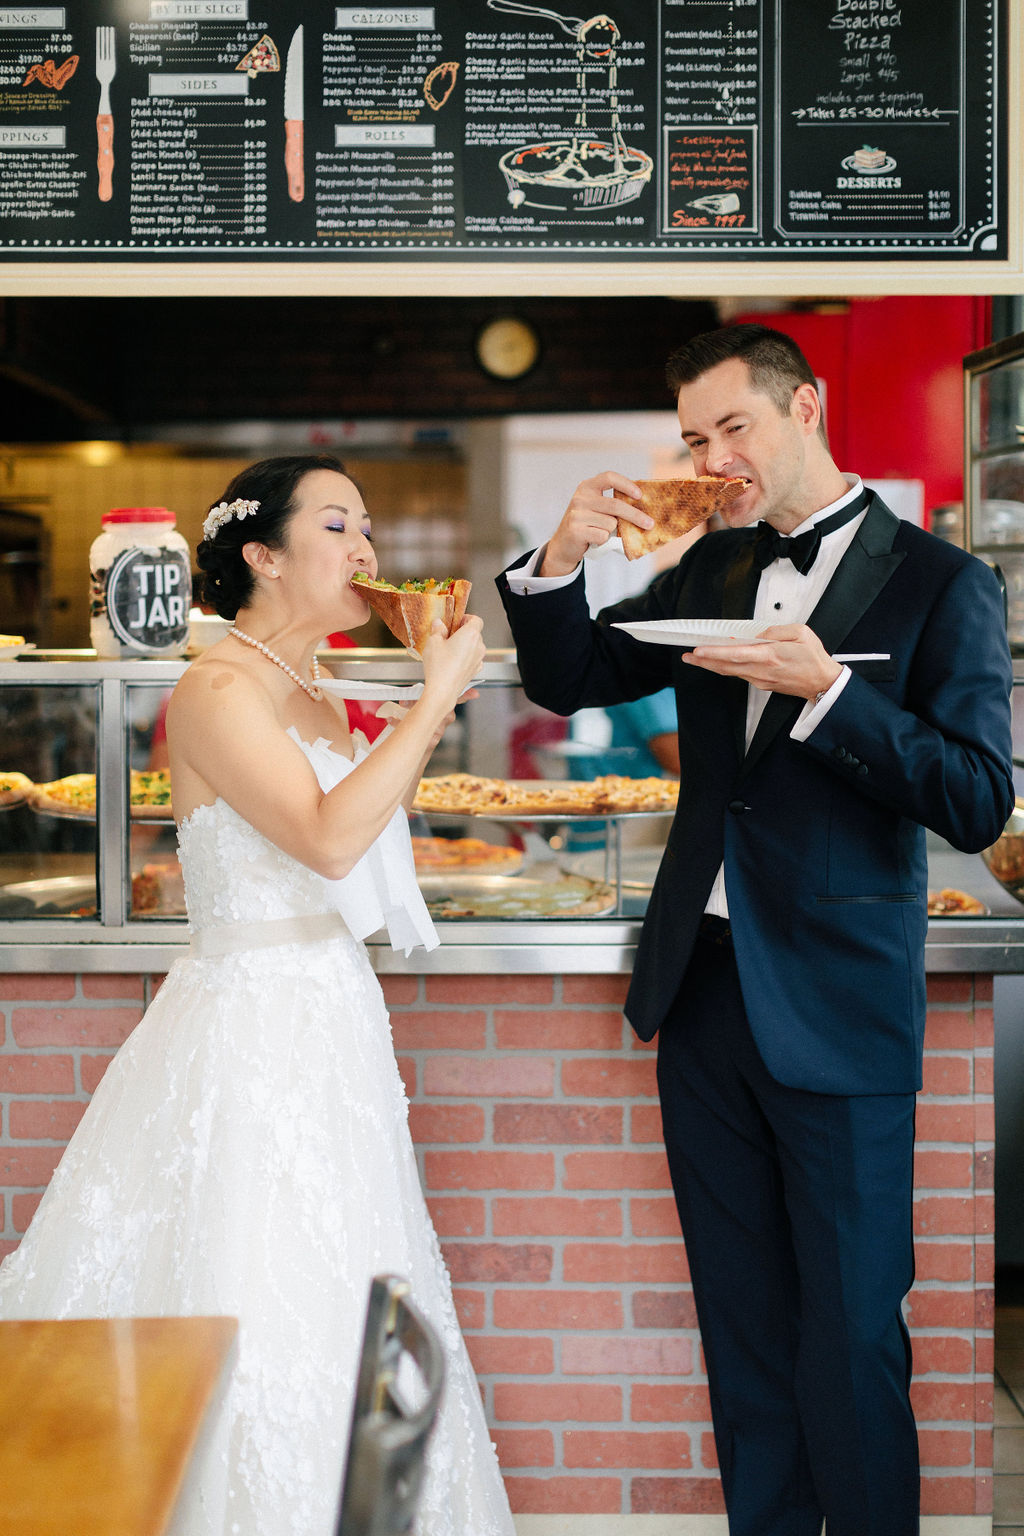 NYC Pizza Wedding Photo